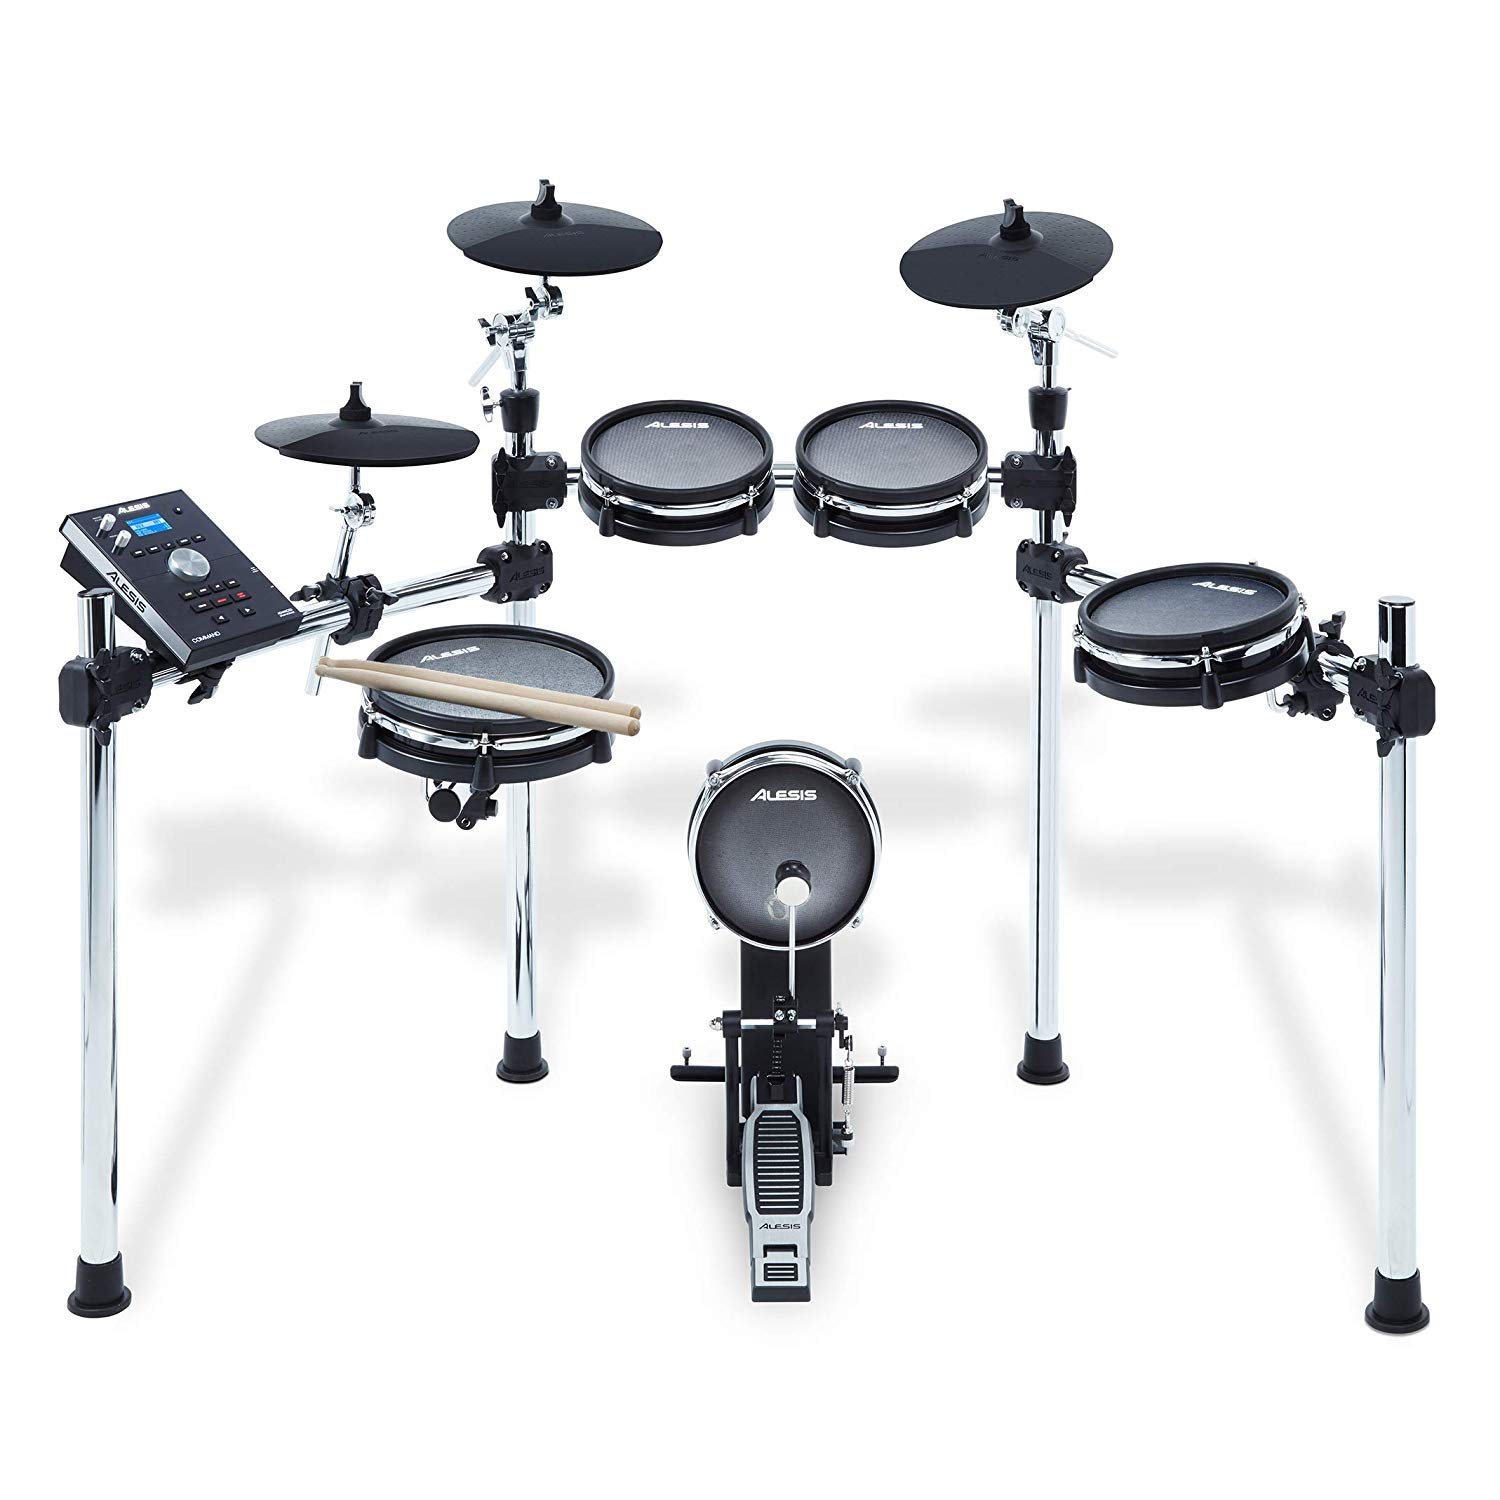 Alesis COMMAND MESH KIT Eight-Piece Electronic Drum Kit with Pair of Drumsticks + Samson SR550 Studio Headphones + Hosa 3.5 mm Interconnect Cable, 10 feet - Deluxe Accessory Bundle by Alesis (Image #2)